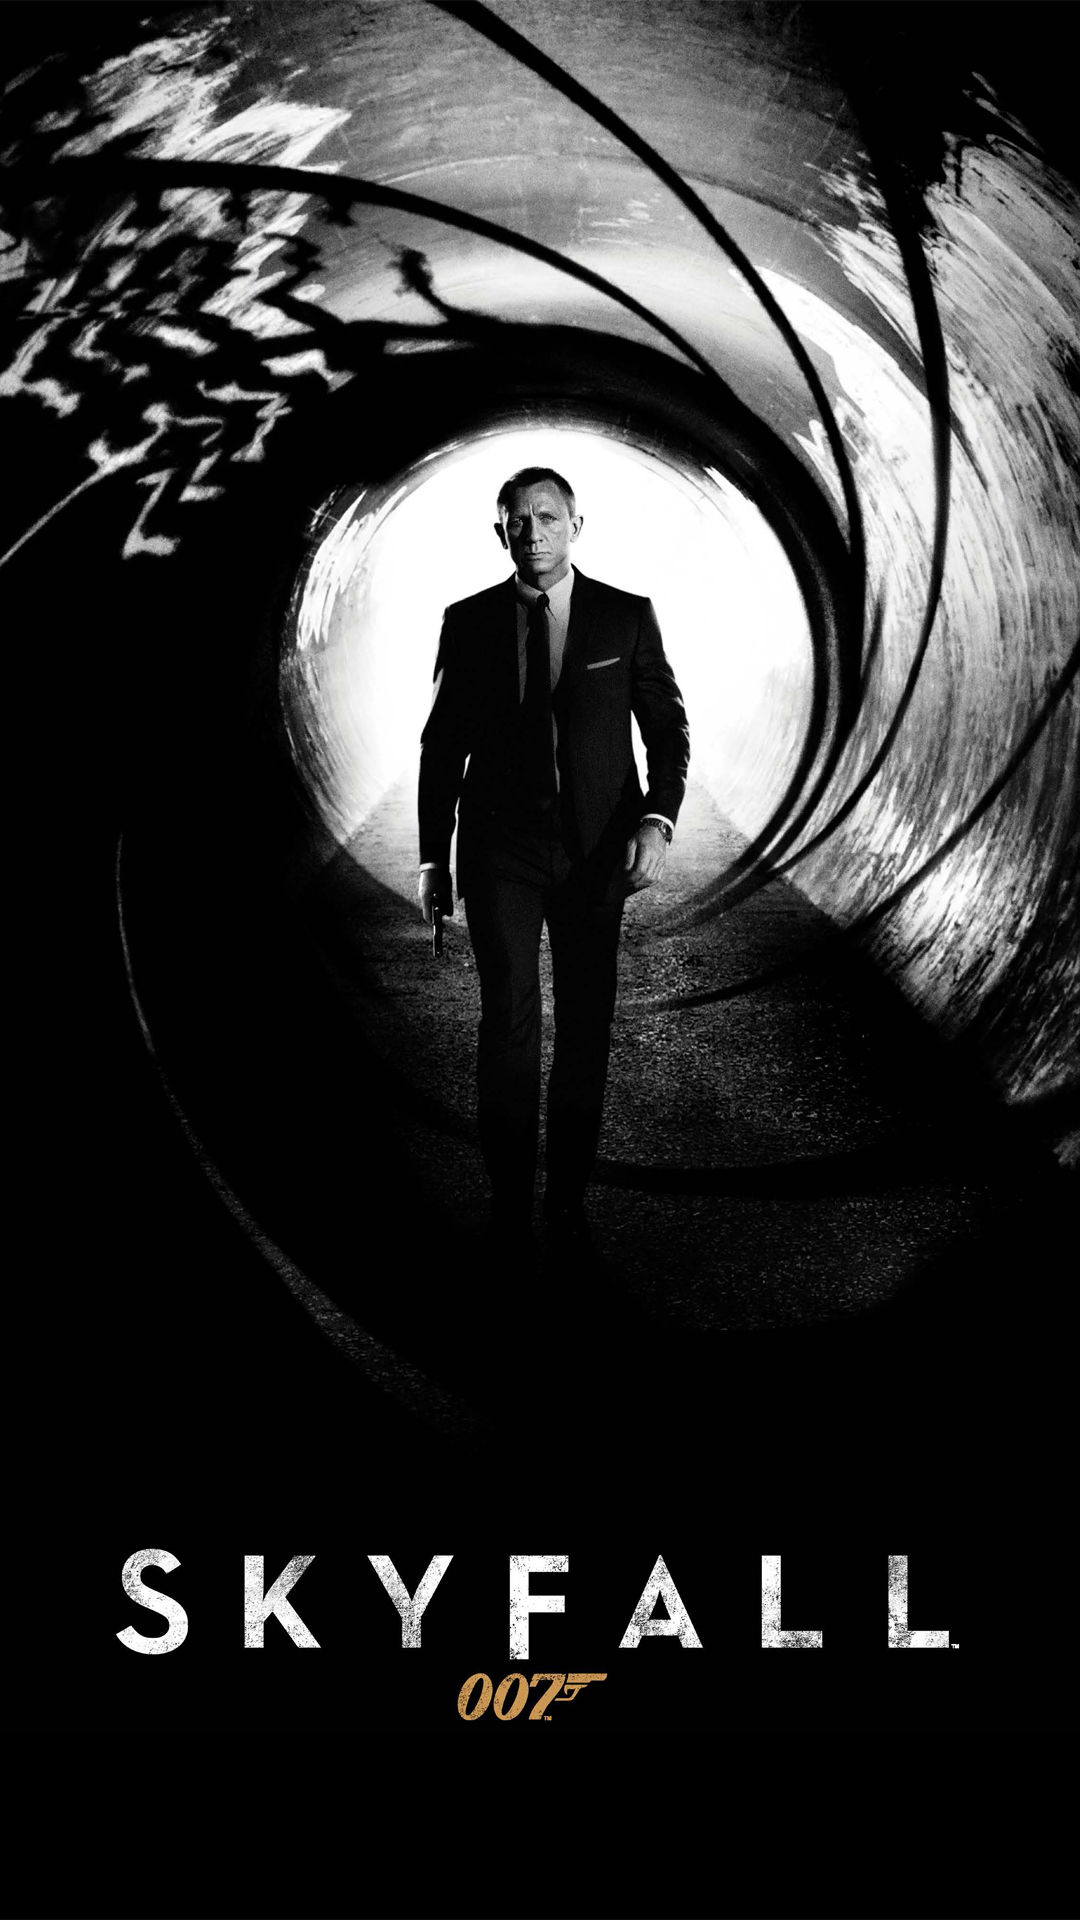 Sky Fall HTC hd wallpaper